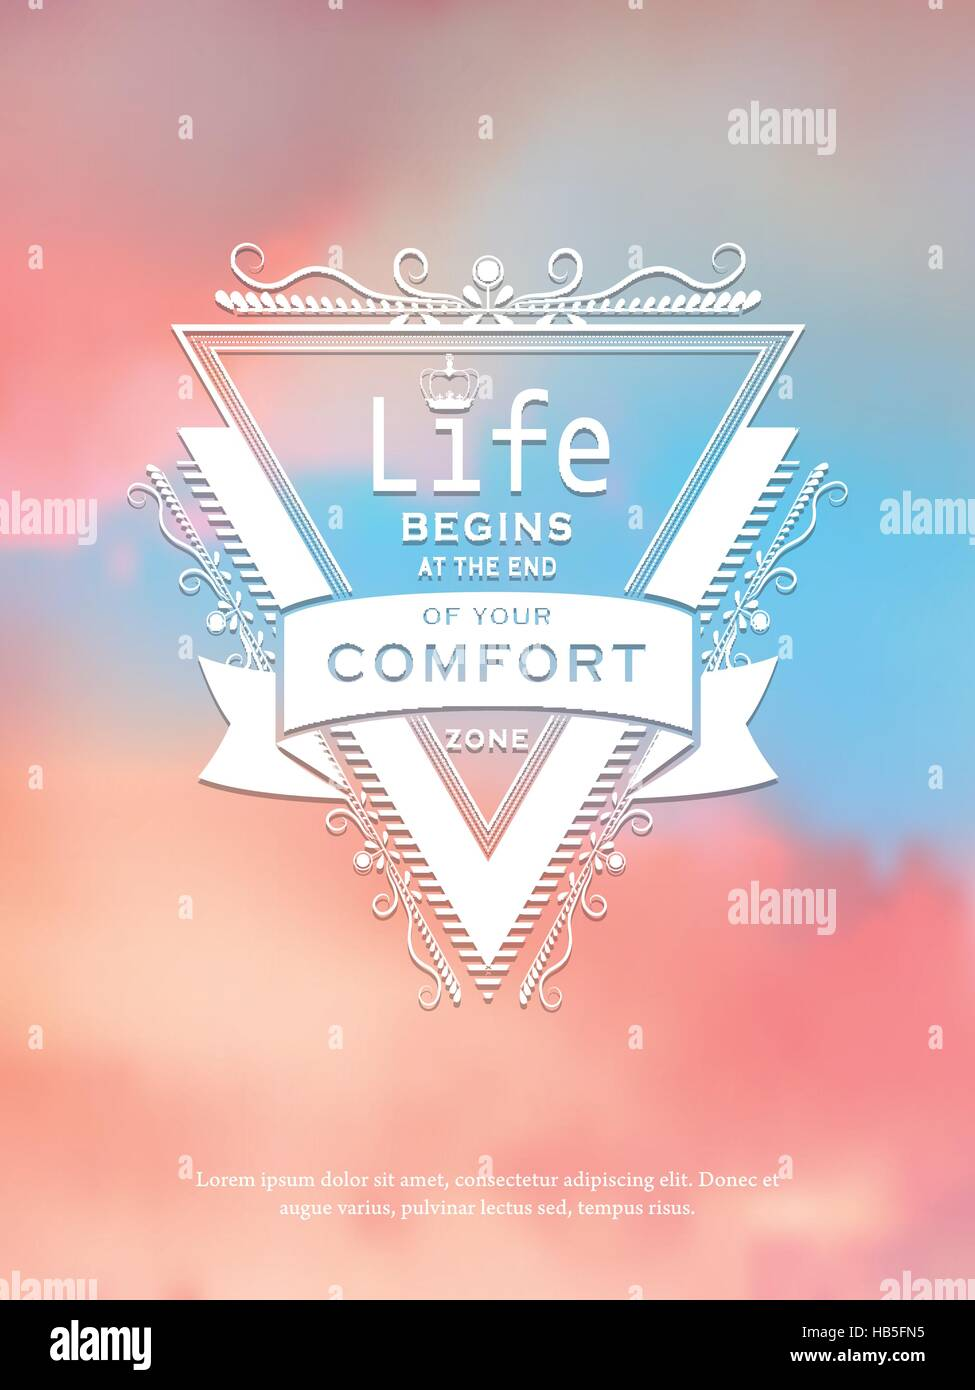 Positive Life Quotes Over Beautiful Blurred Background Stock Vector